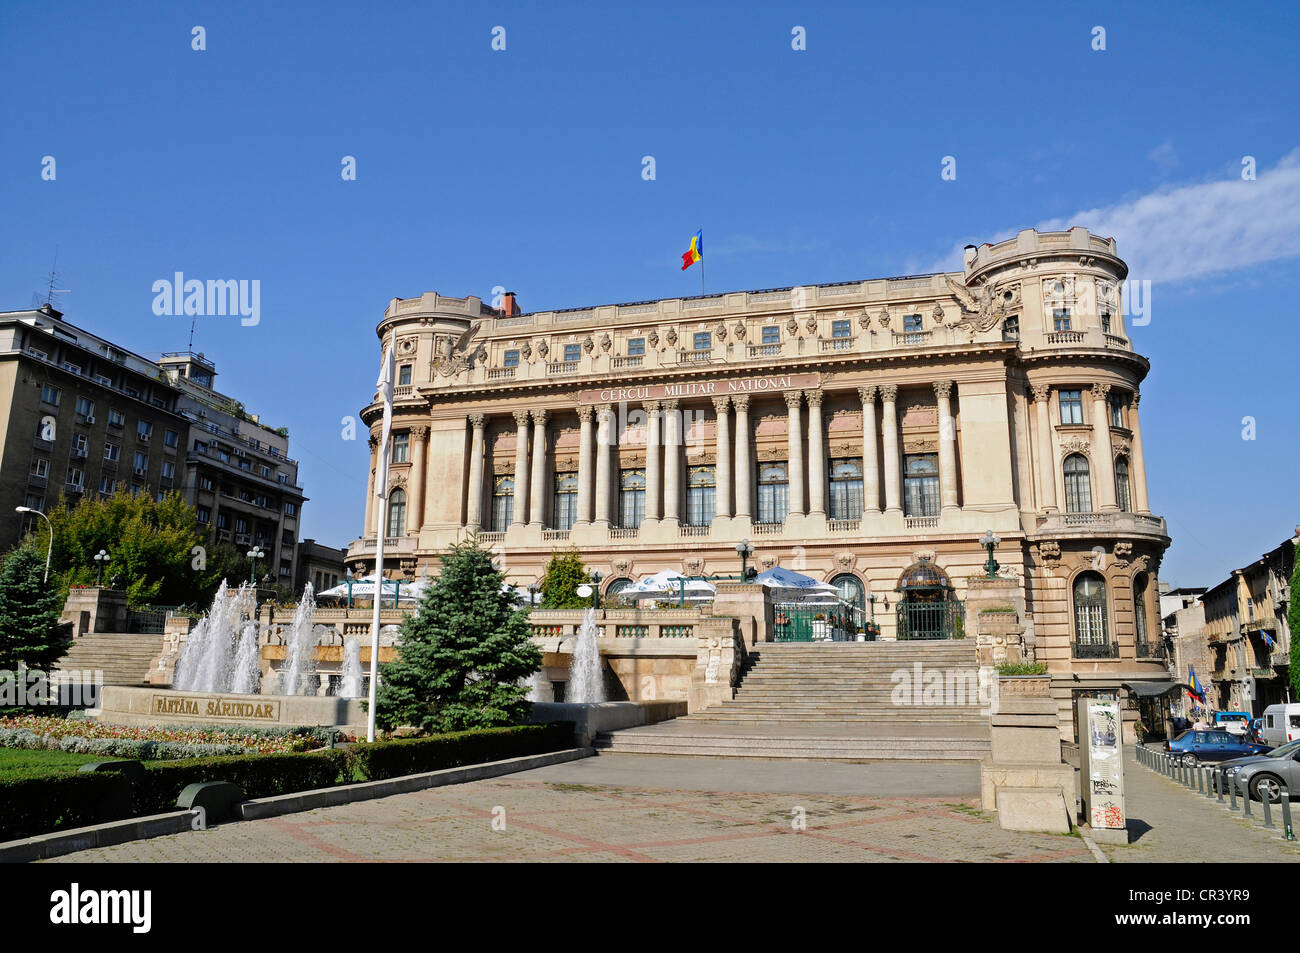 Cercul Militar National, officers' mess, military building, restaurant, museum, Bucharest, Romania, Eastern - Stock Image